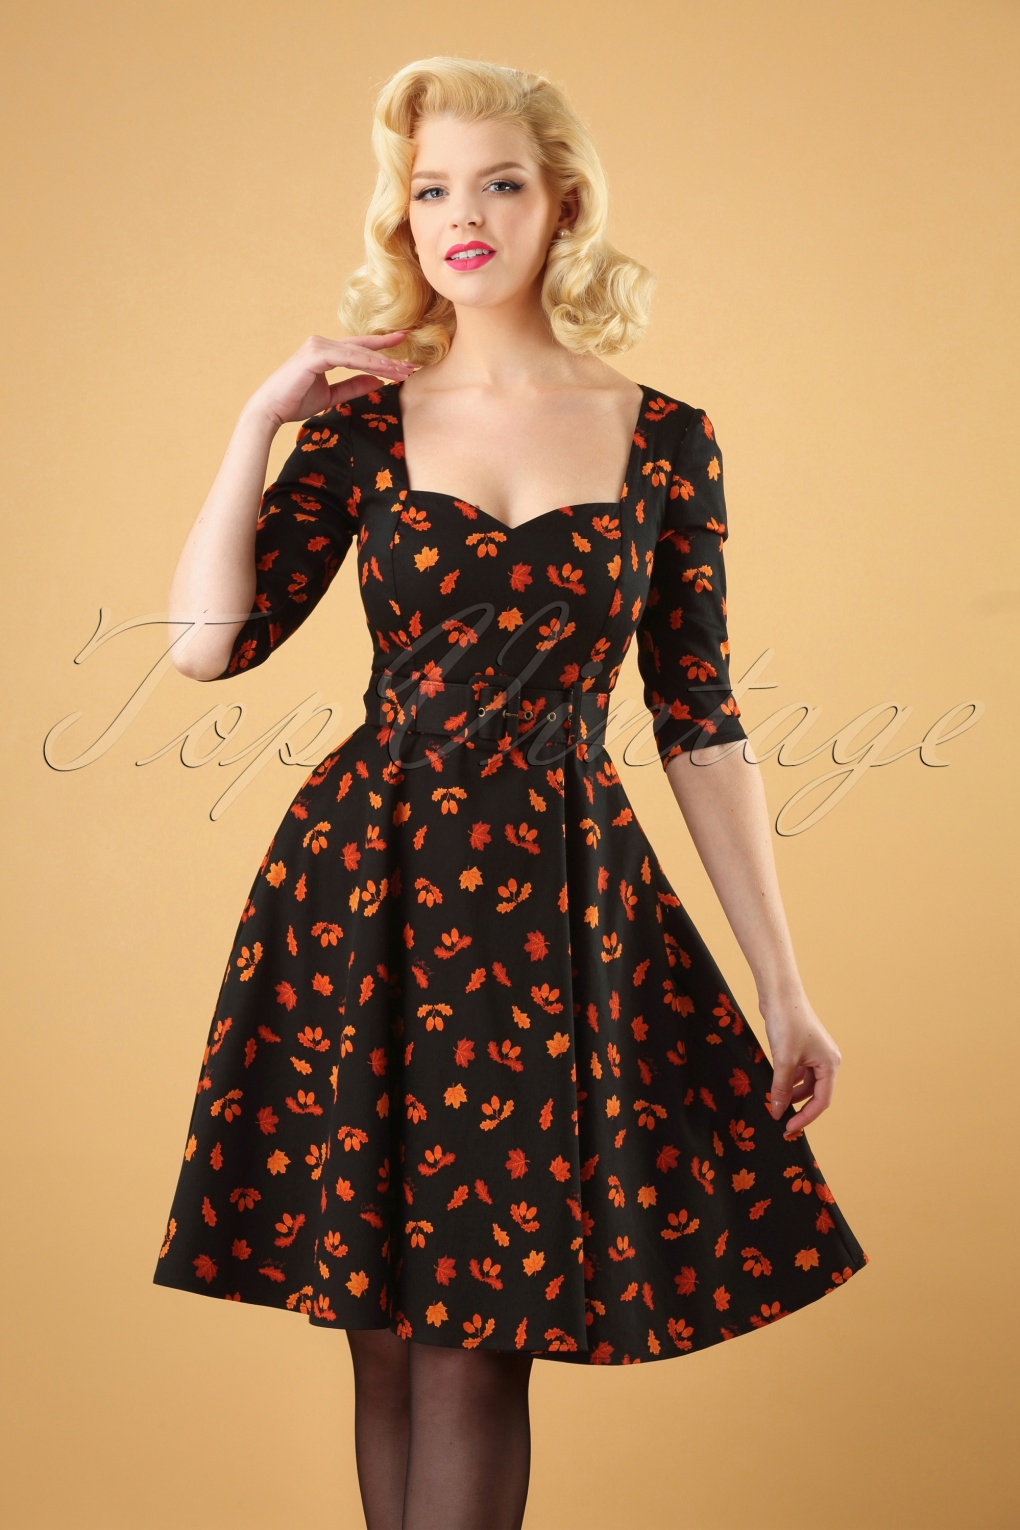 1950s Swing Dresses | 50s Swing Dress 50s Eliana Acorn Swing Dress in Black £43.09 AT vintagedancer.com